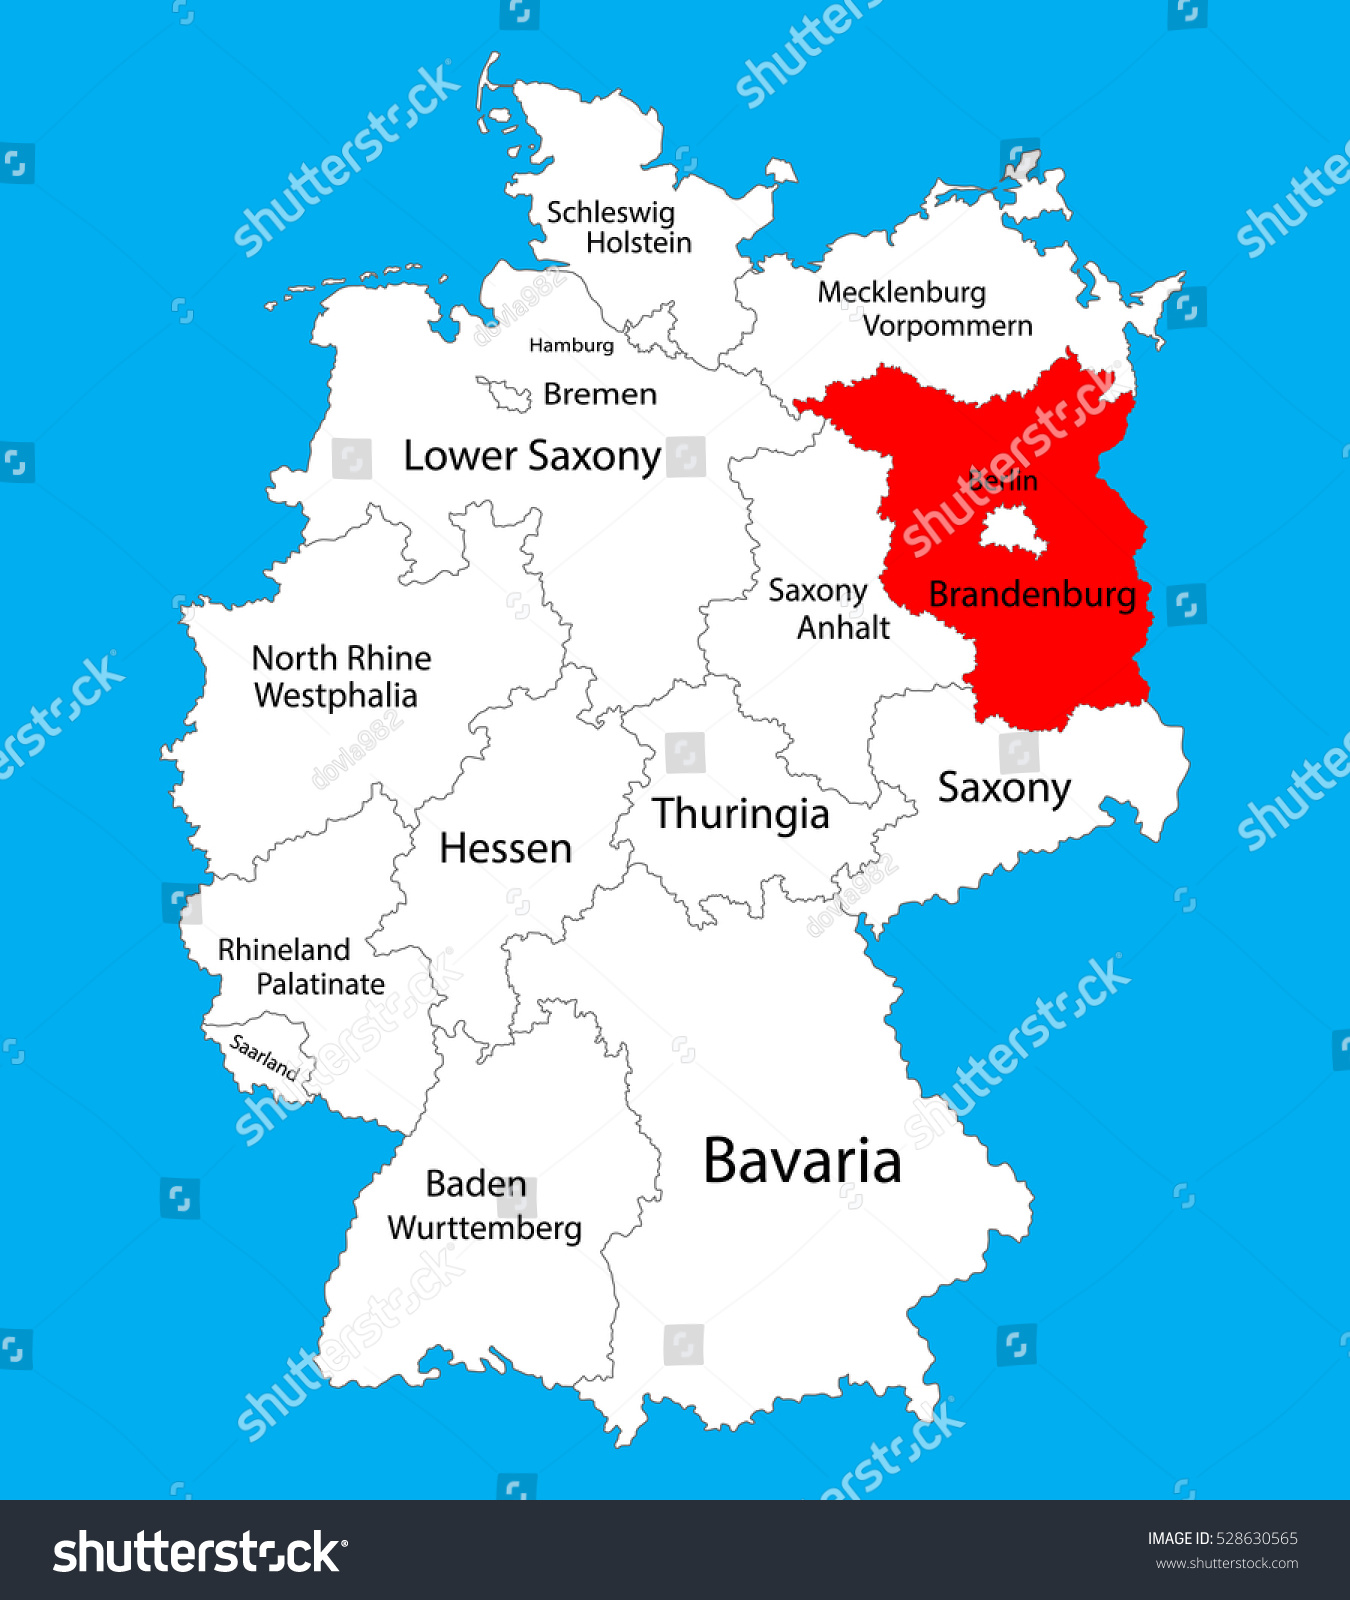 Brandenburg State Map Germany Vector Map Stock Vector HD Royalty